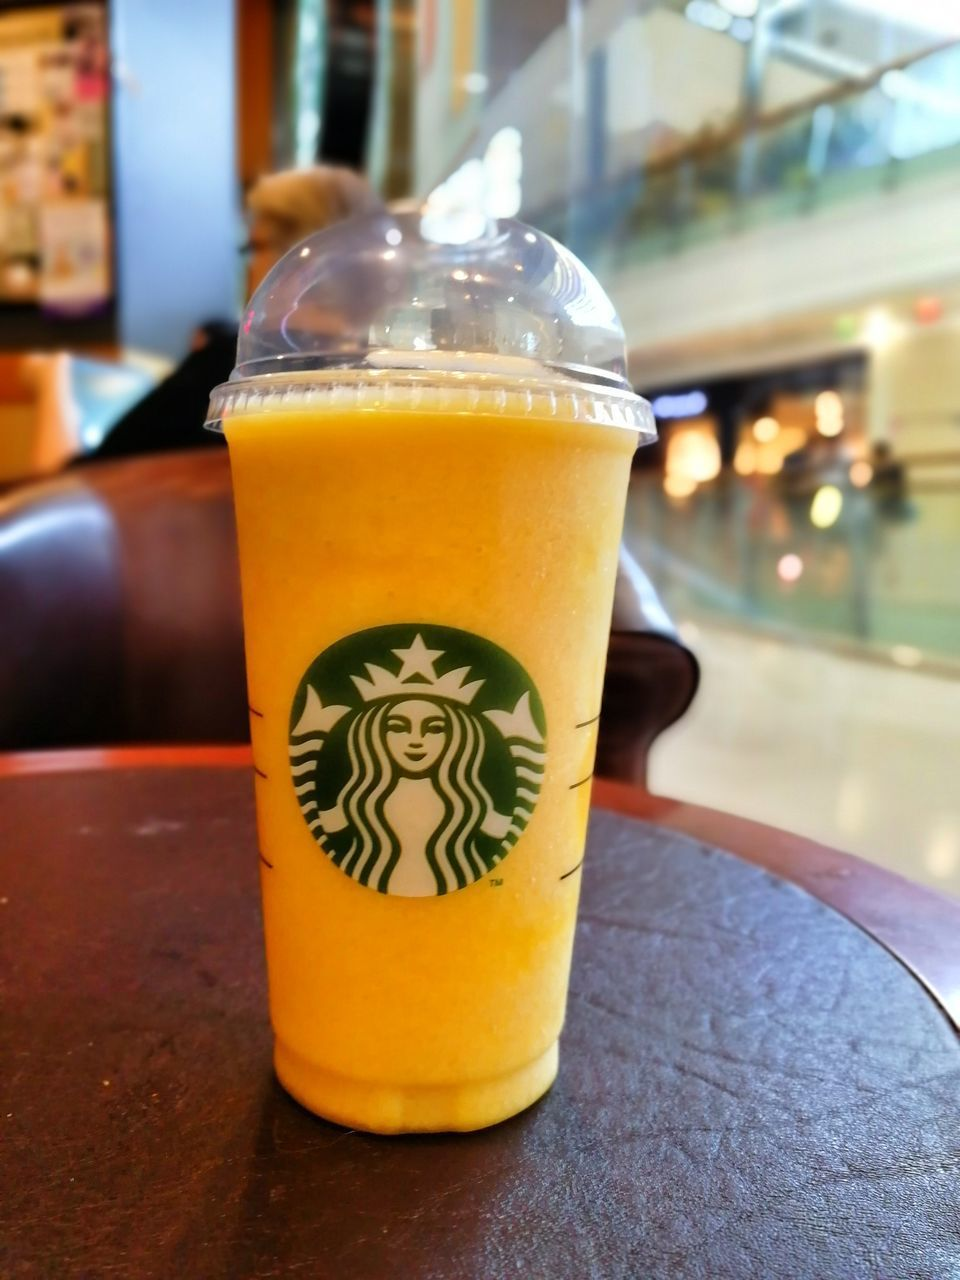 CLOSE-UP OF YELLOW DRINK ON TABLE